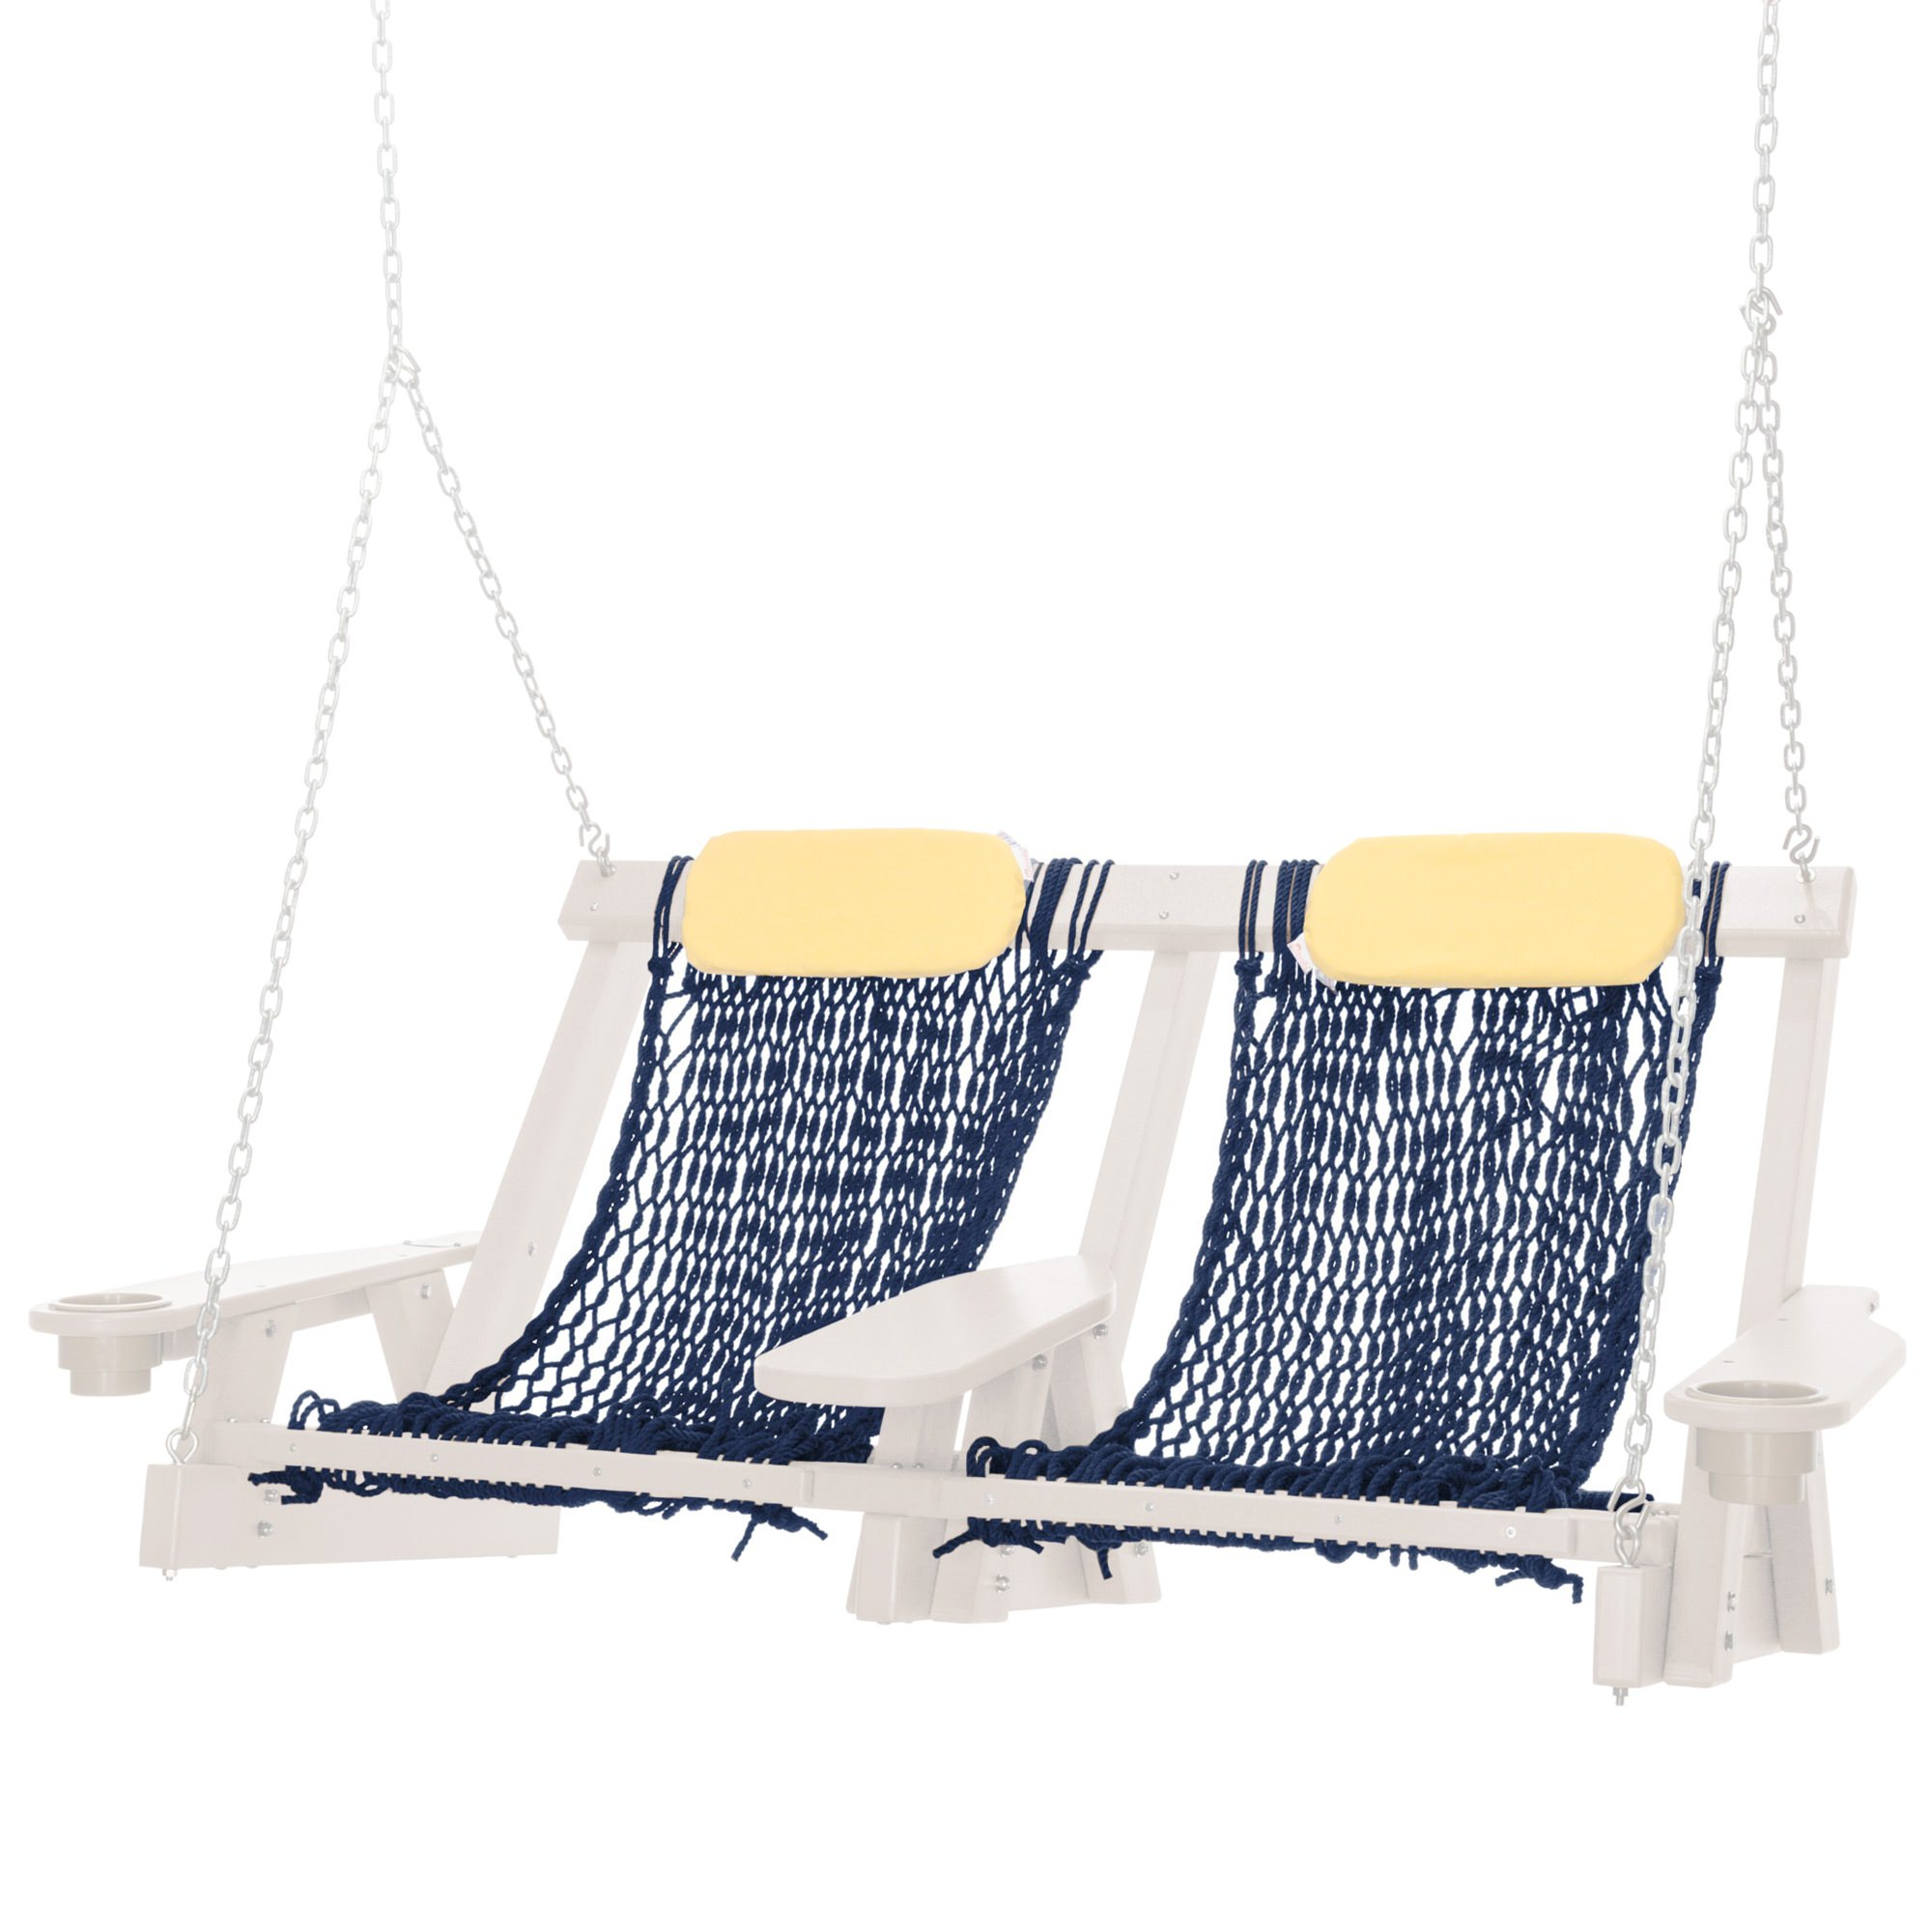 rope chair swing how to install rail molding on stairs deluxe bent oak seat